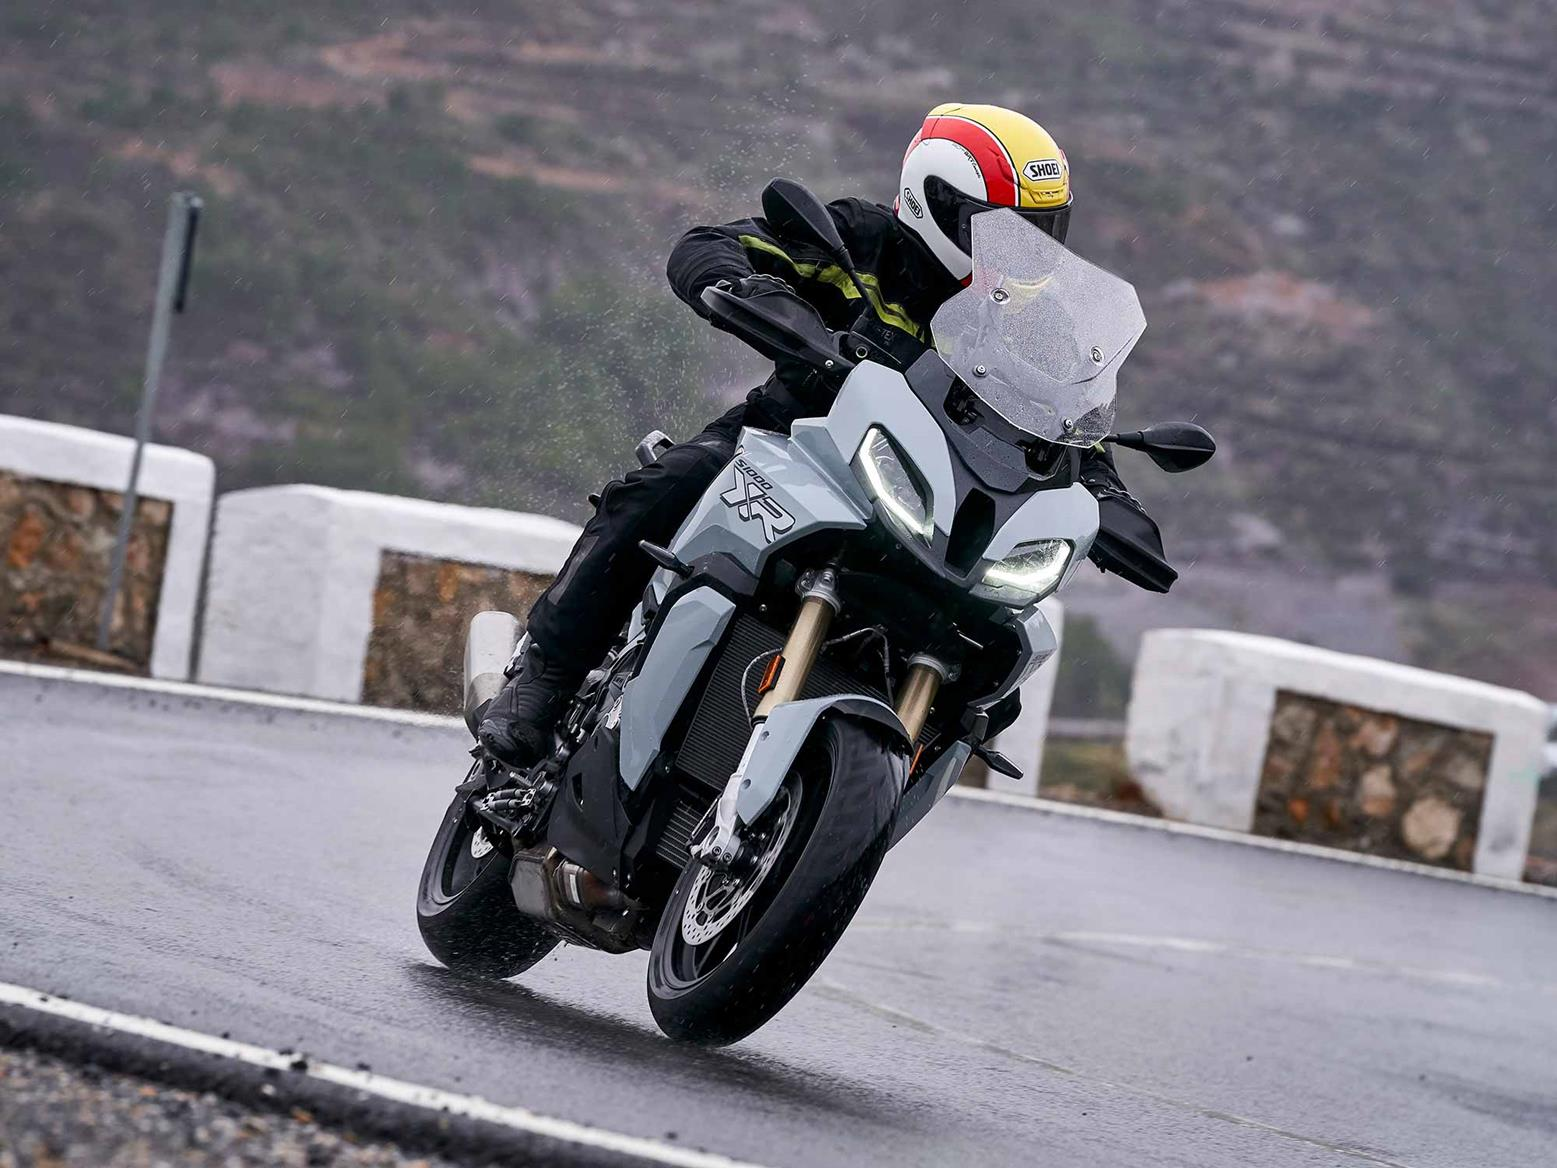 Cornering on the BMW S1000XR